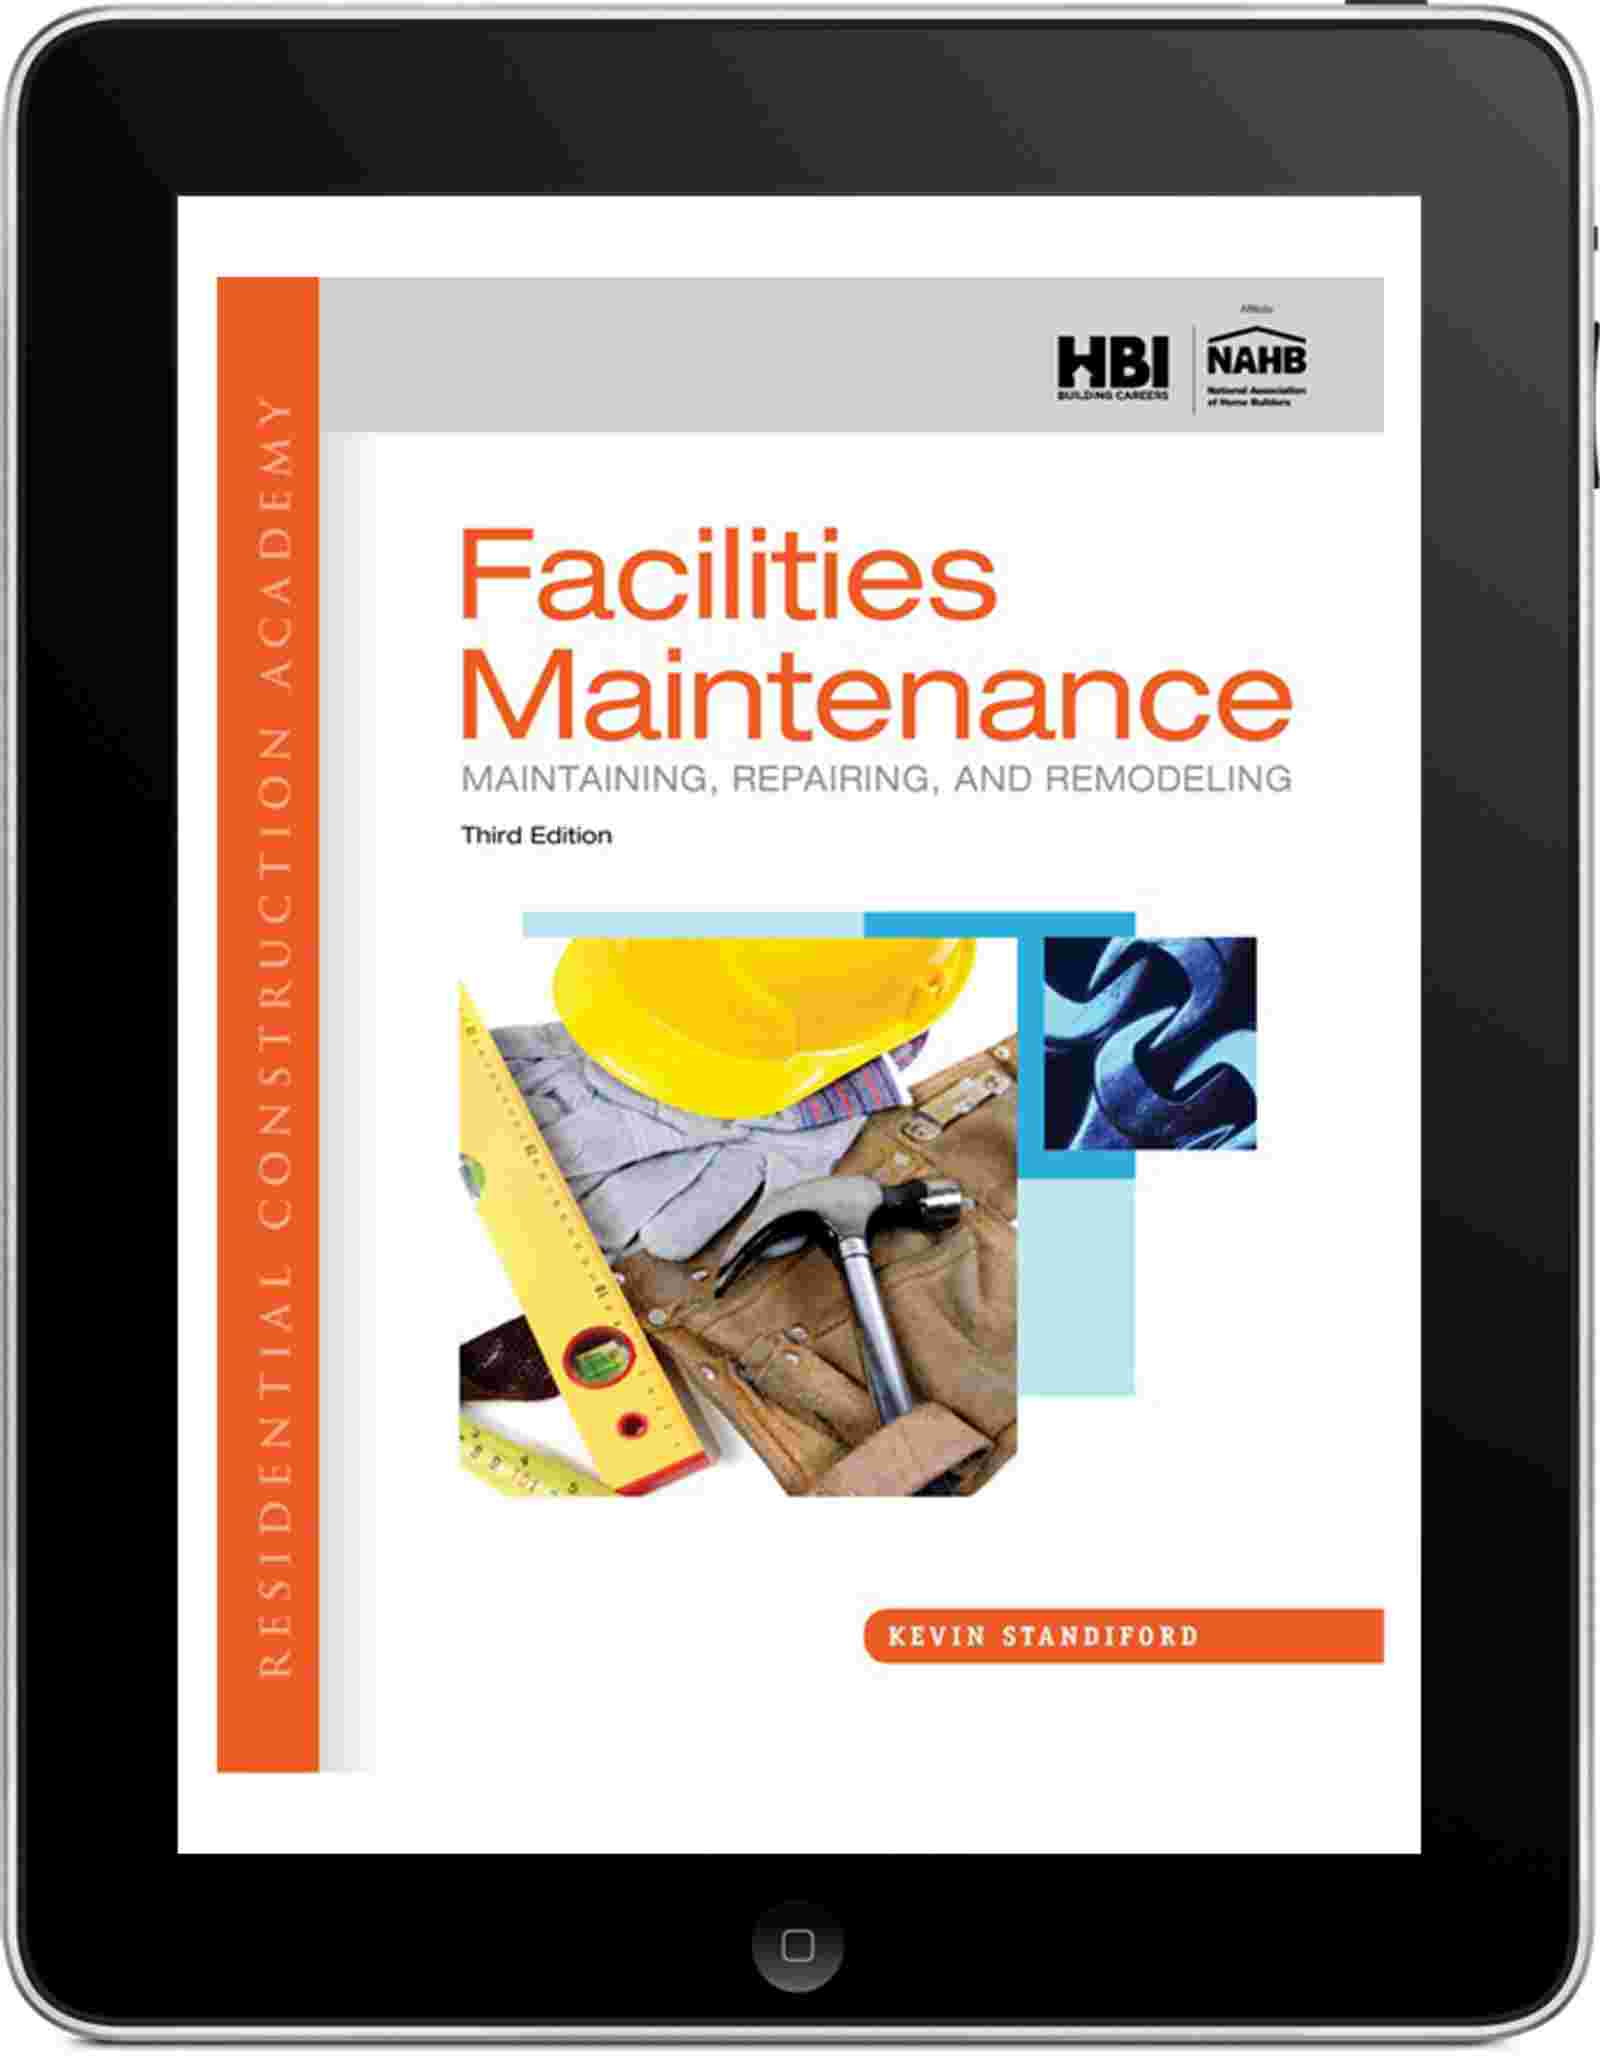 Facilities Maintenance: Maintaining, Repairing, and Remodeling